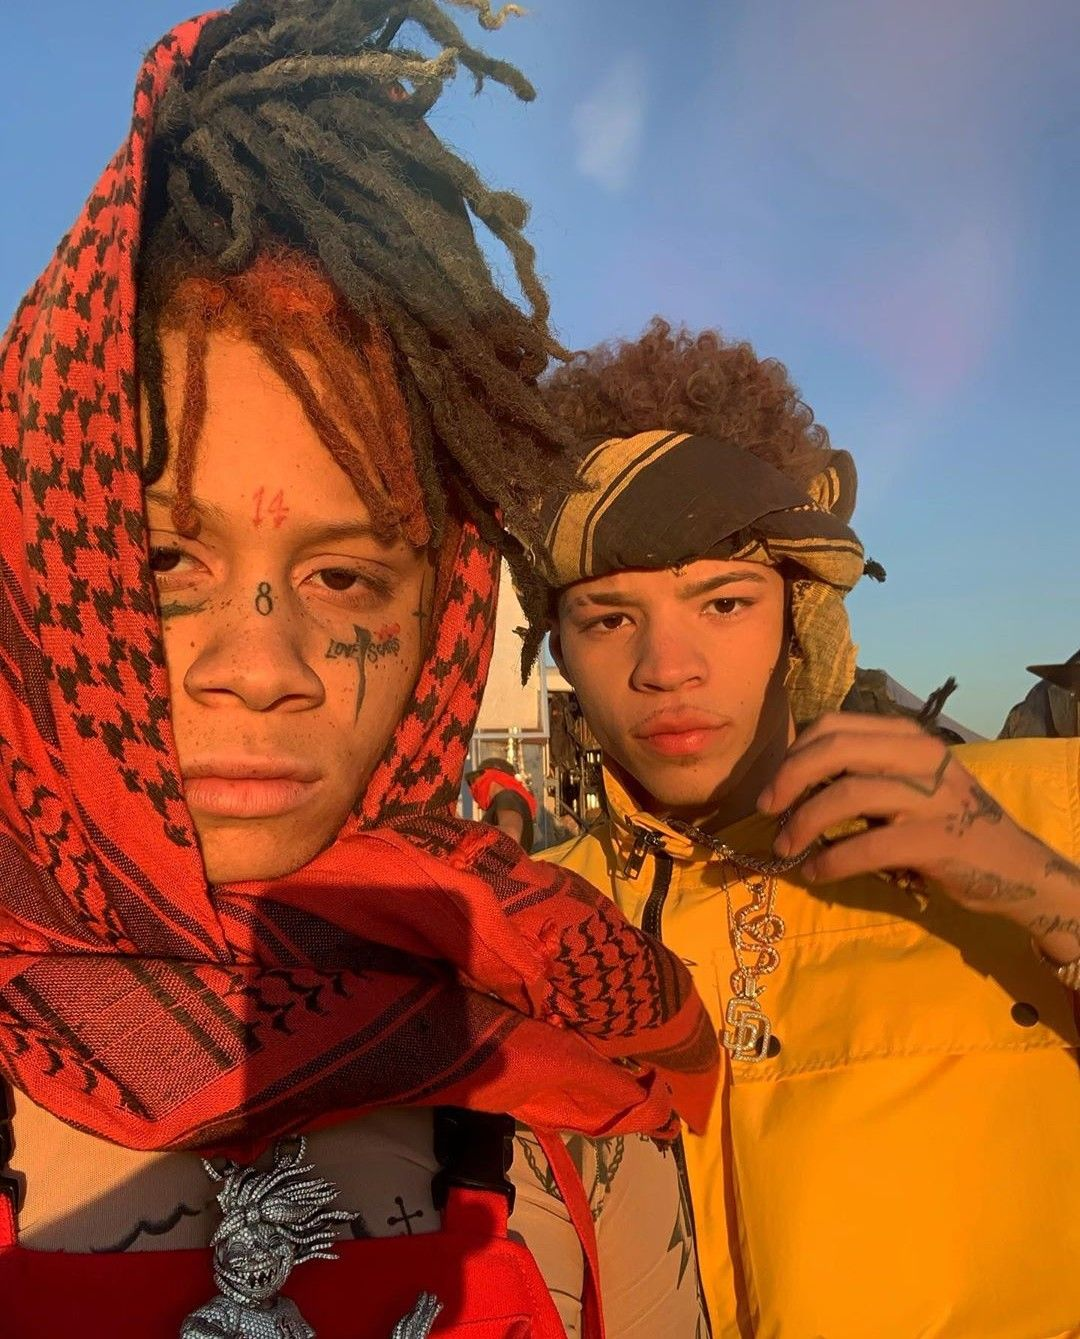 Pin by ⛈ ♡ 𝕃𝕚𝕝 ℚ𝕦𝕖𝕖𝕟 ♡ 🌴 on Trippie redd ️ (With images